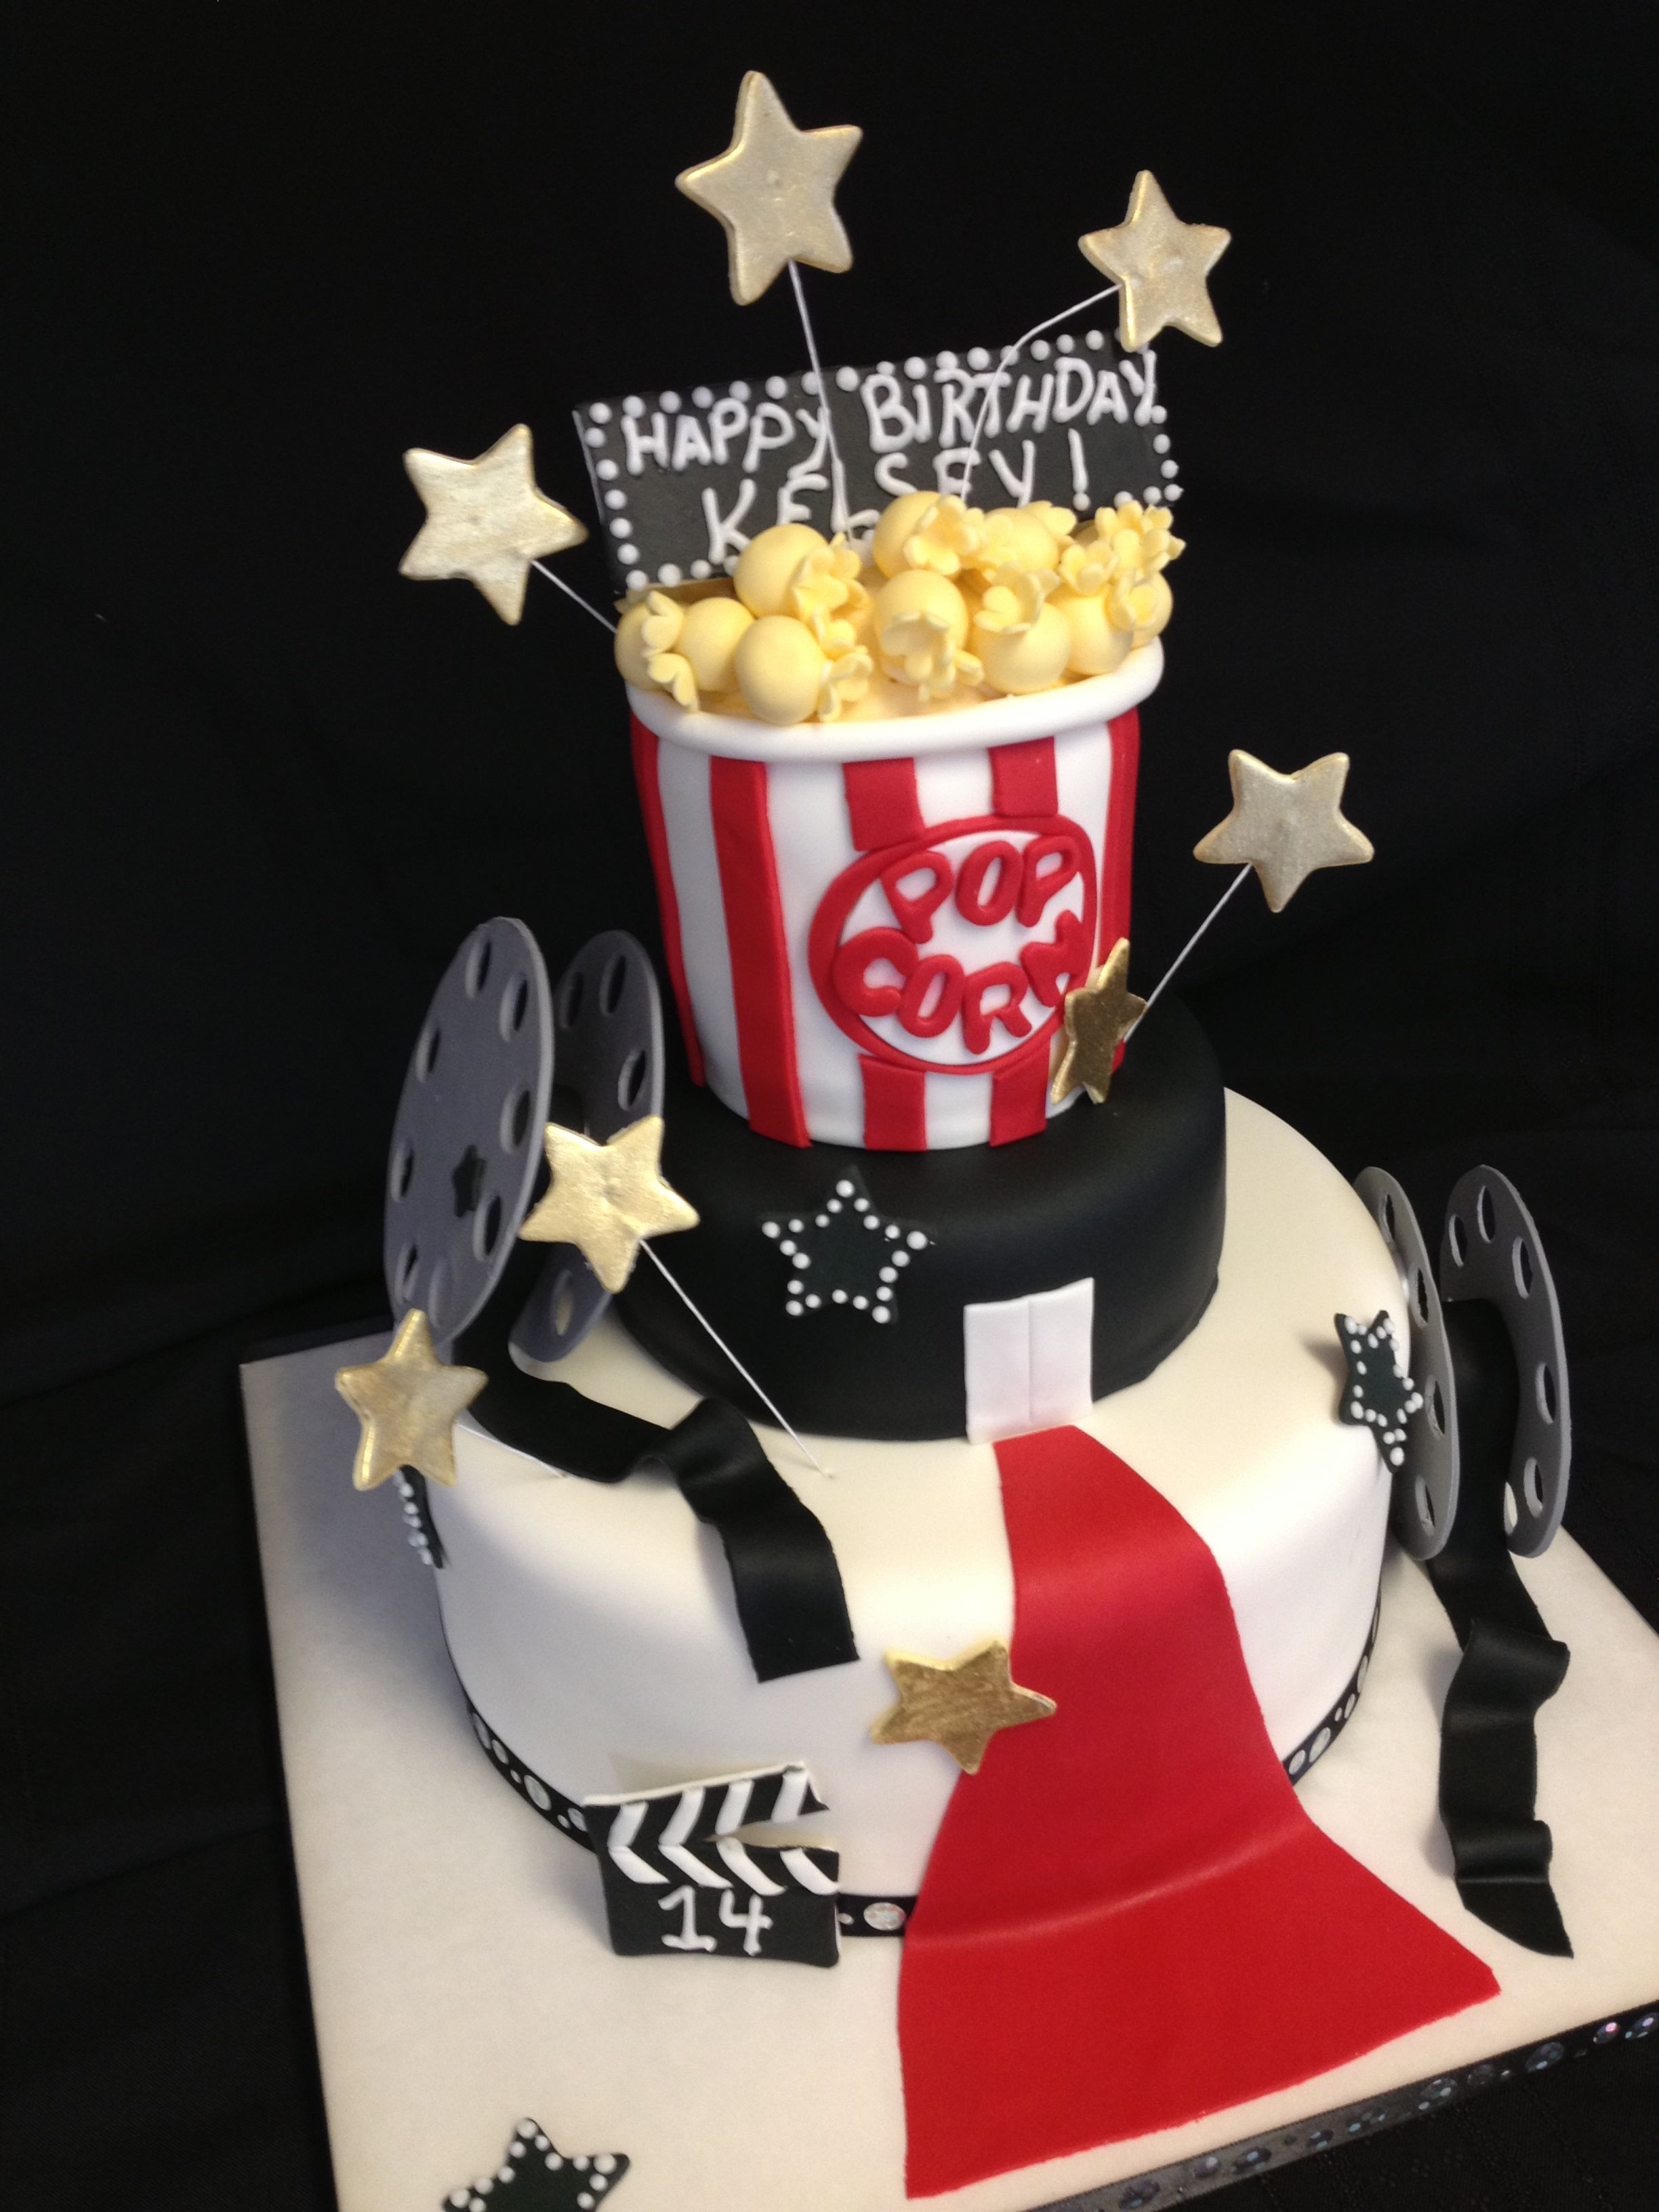 The Movie Birthday Cake